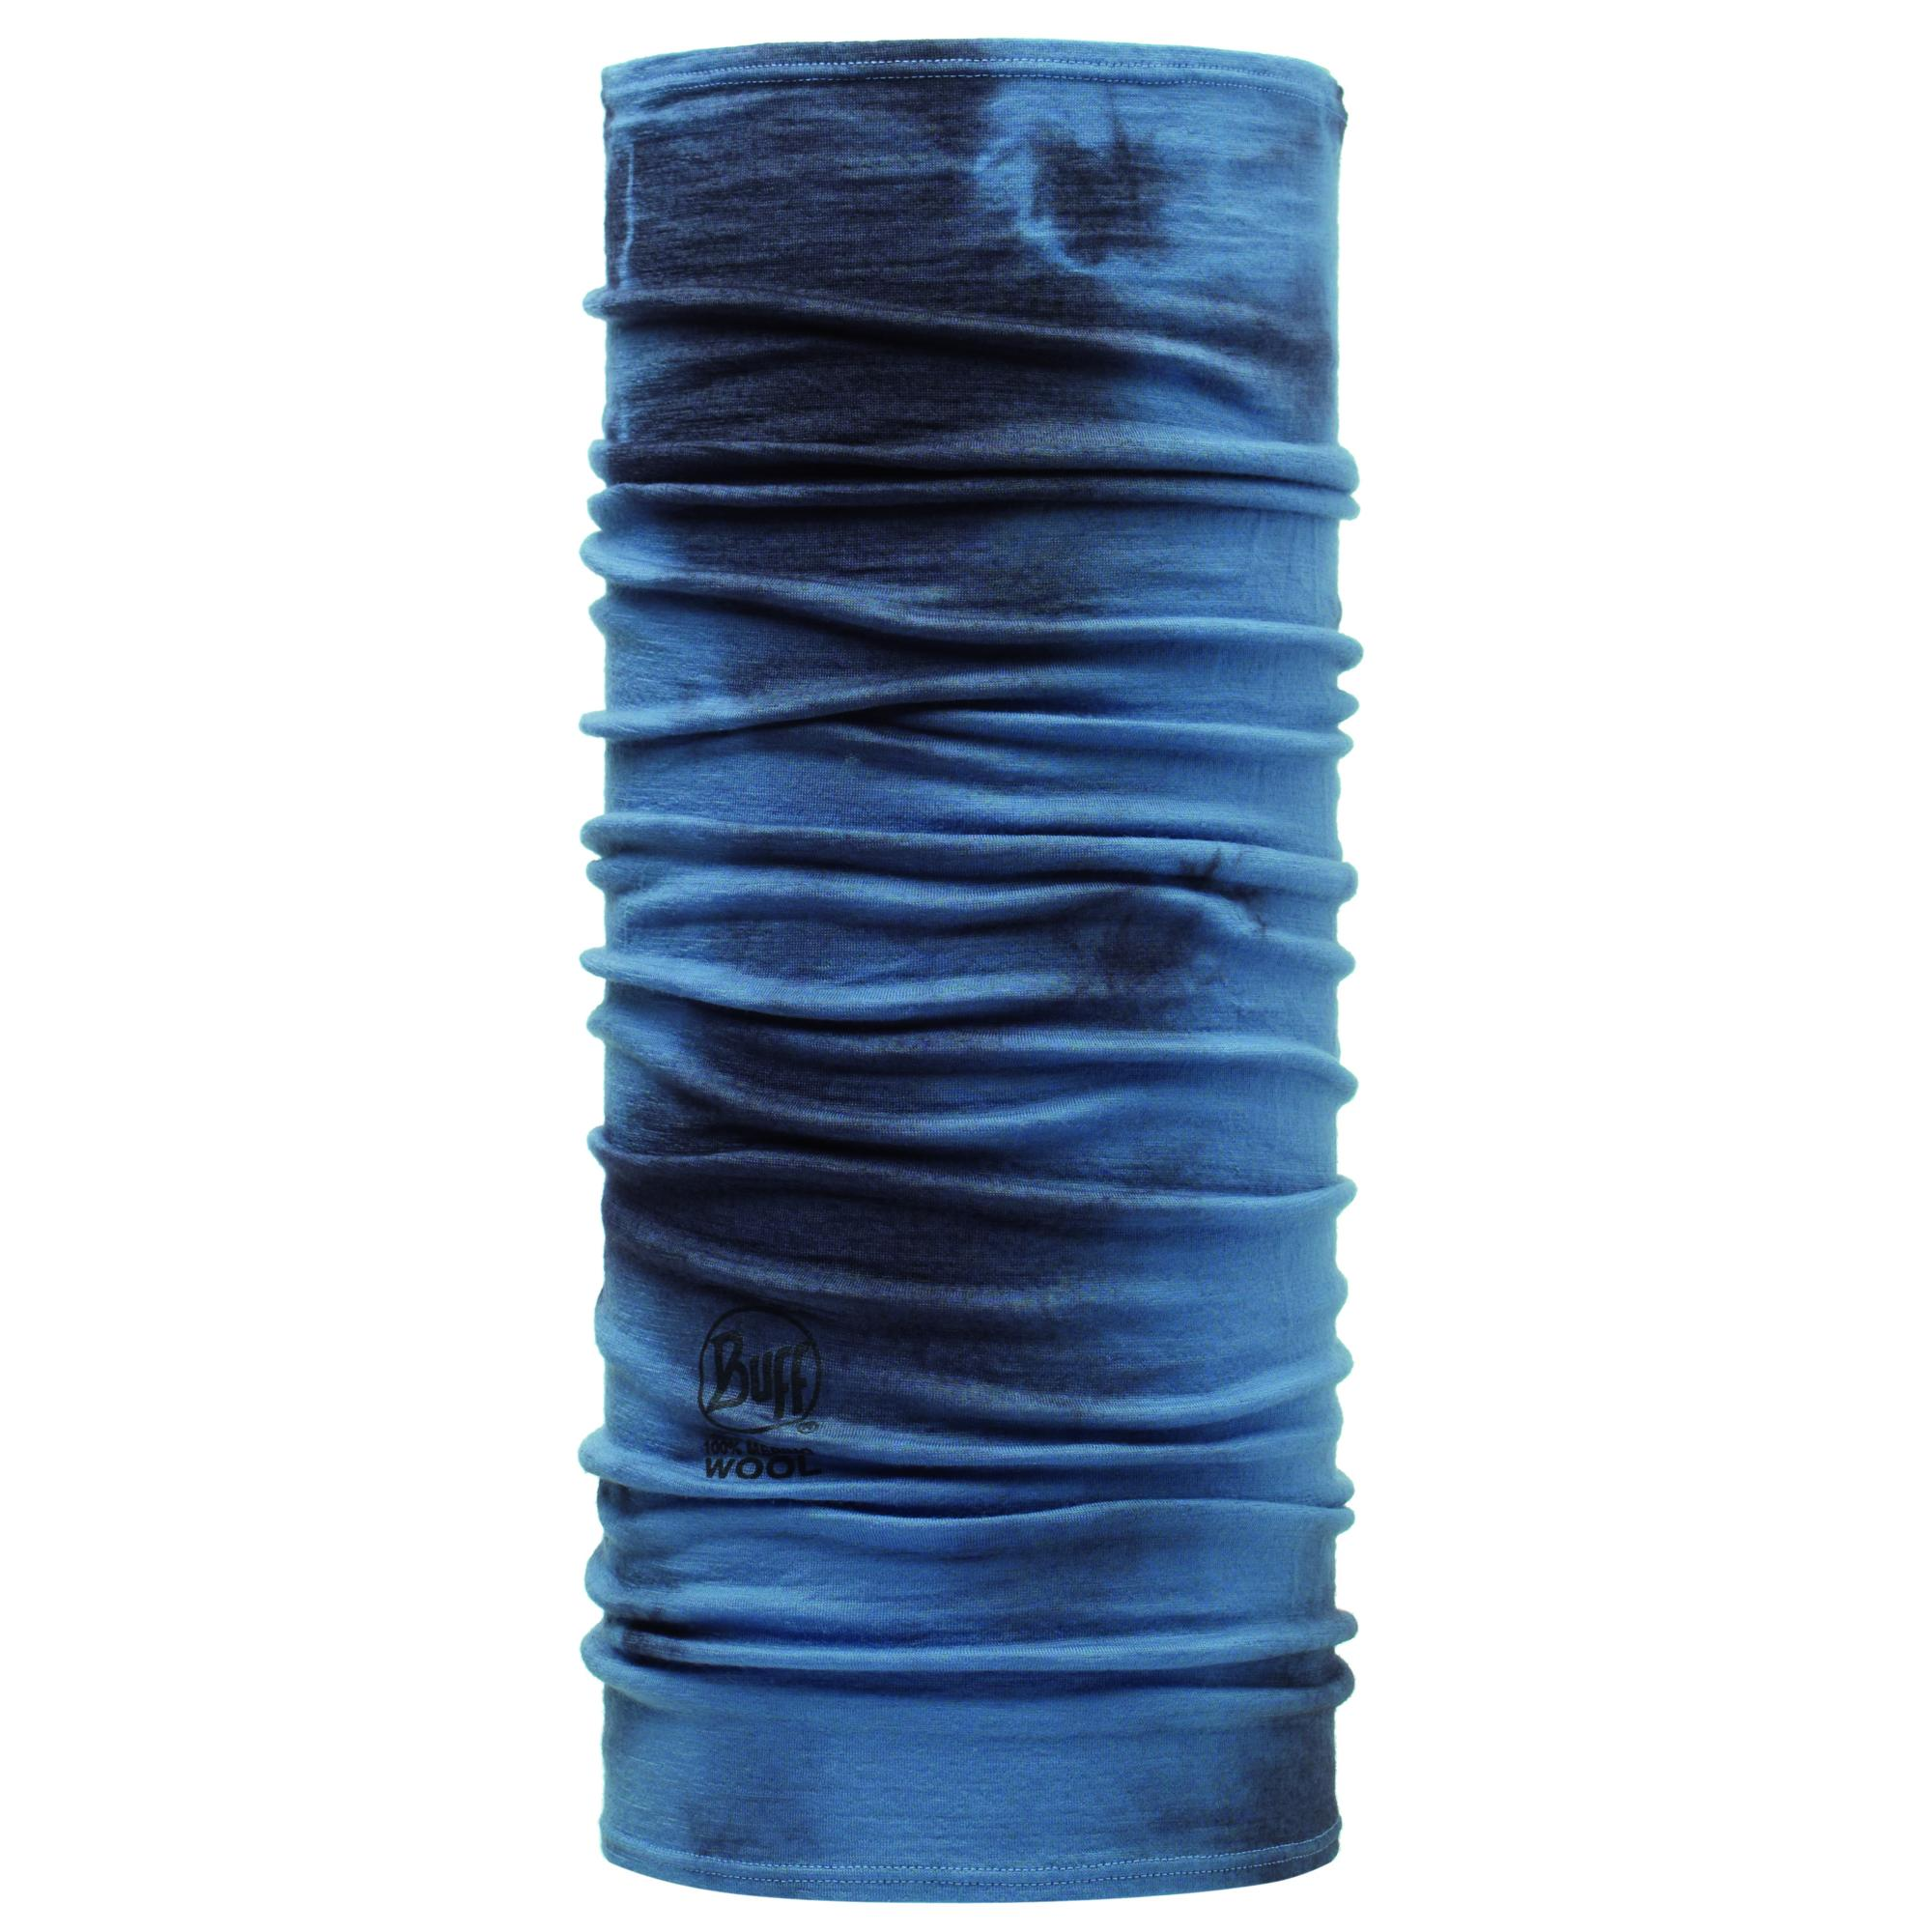 Купить Бандана BUFF Wool Tie Dye WOOL CHINA BLUE DYE Банданы и шарфы Buff ® 1079849